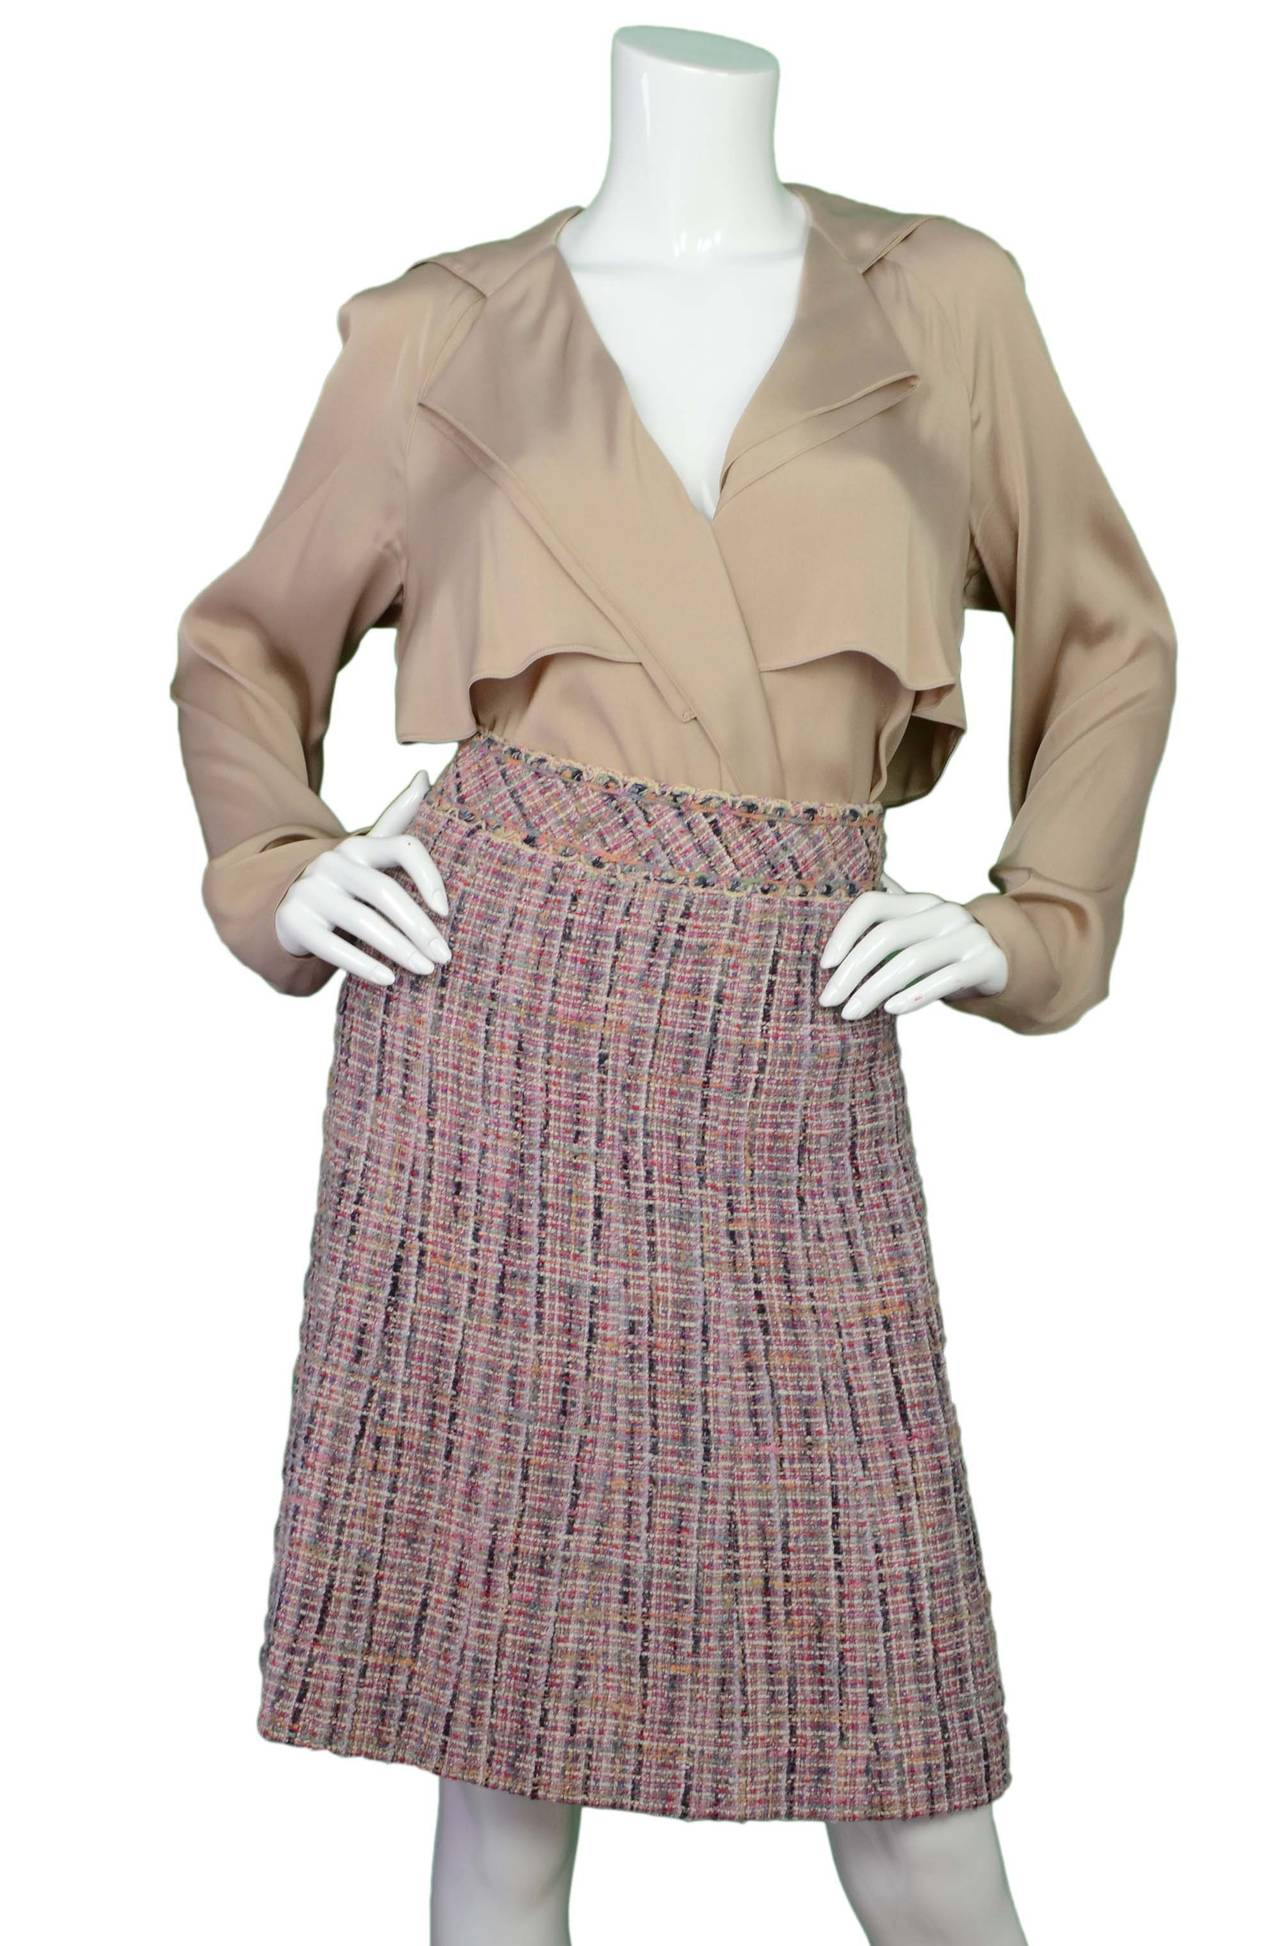 CHANEL Multi-Colored Tweed A-Line Skirt sz 34 4